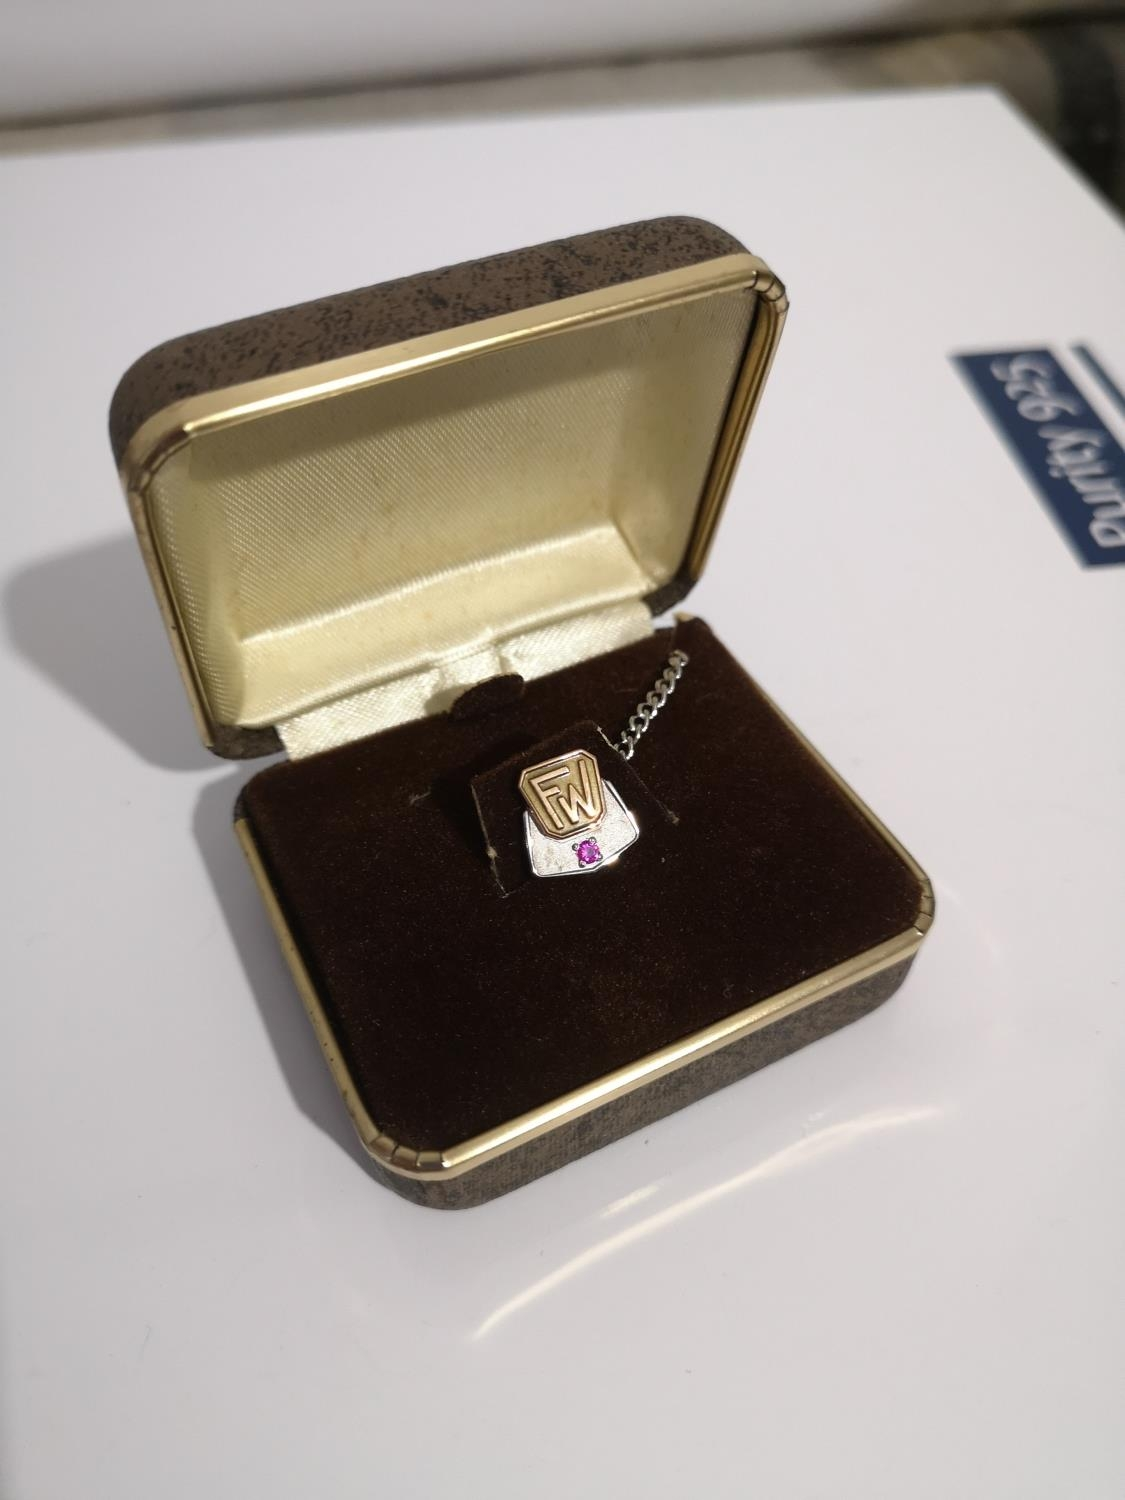 A 10CT GOLD AND RUBY STONE LONG SERVICE TIE PIN. COMES WITH PRESENTATION BOX.